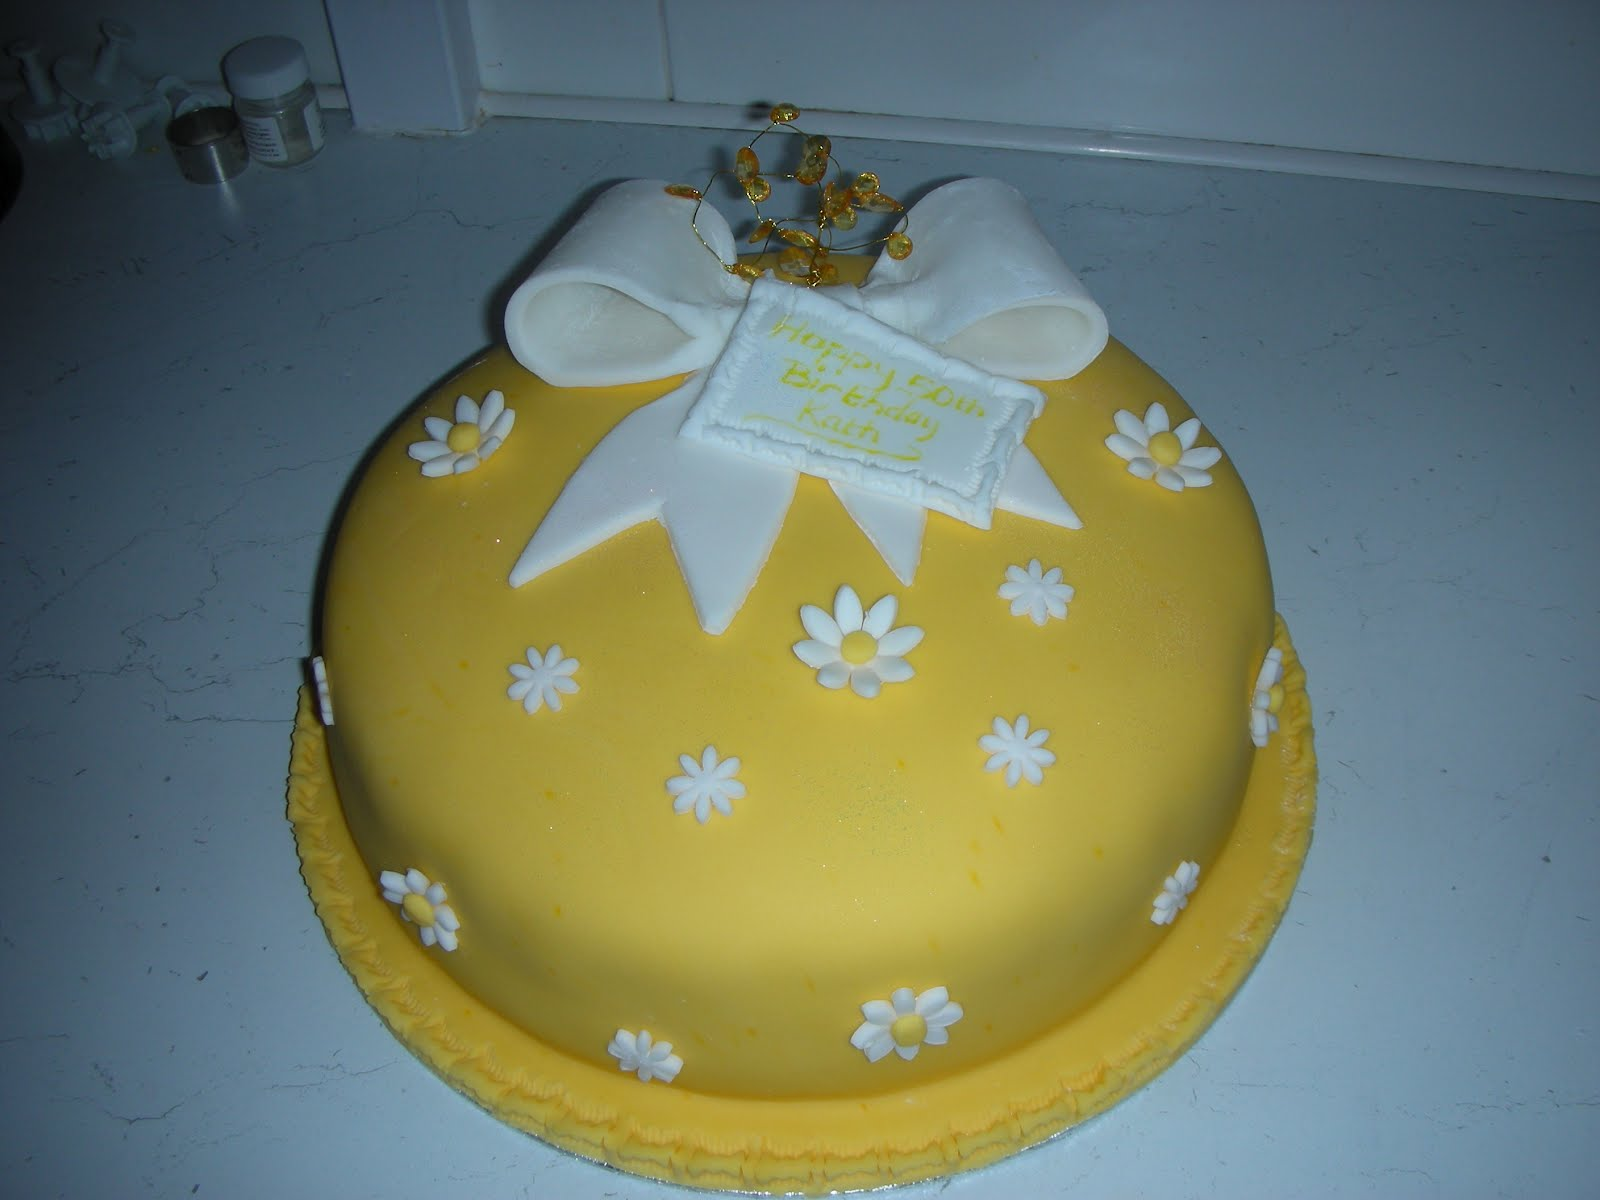 Sue's Cakes and Other Nonsense: Latest Cakes